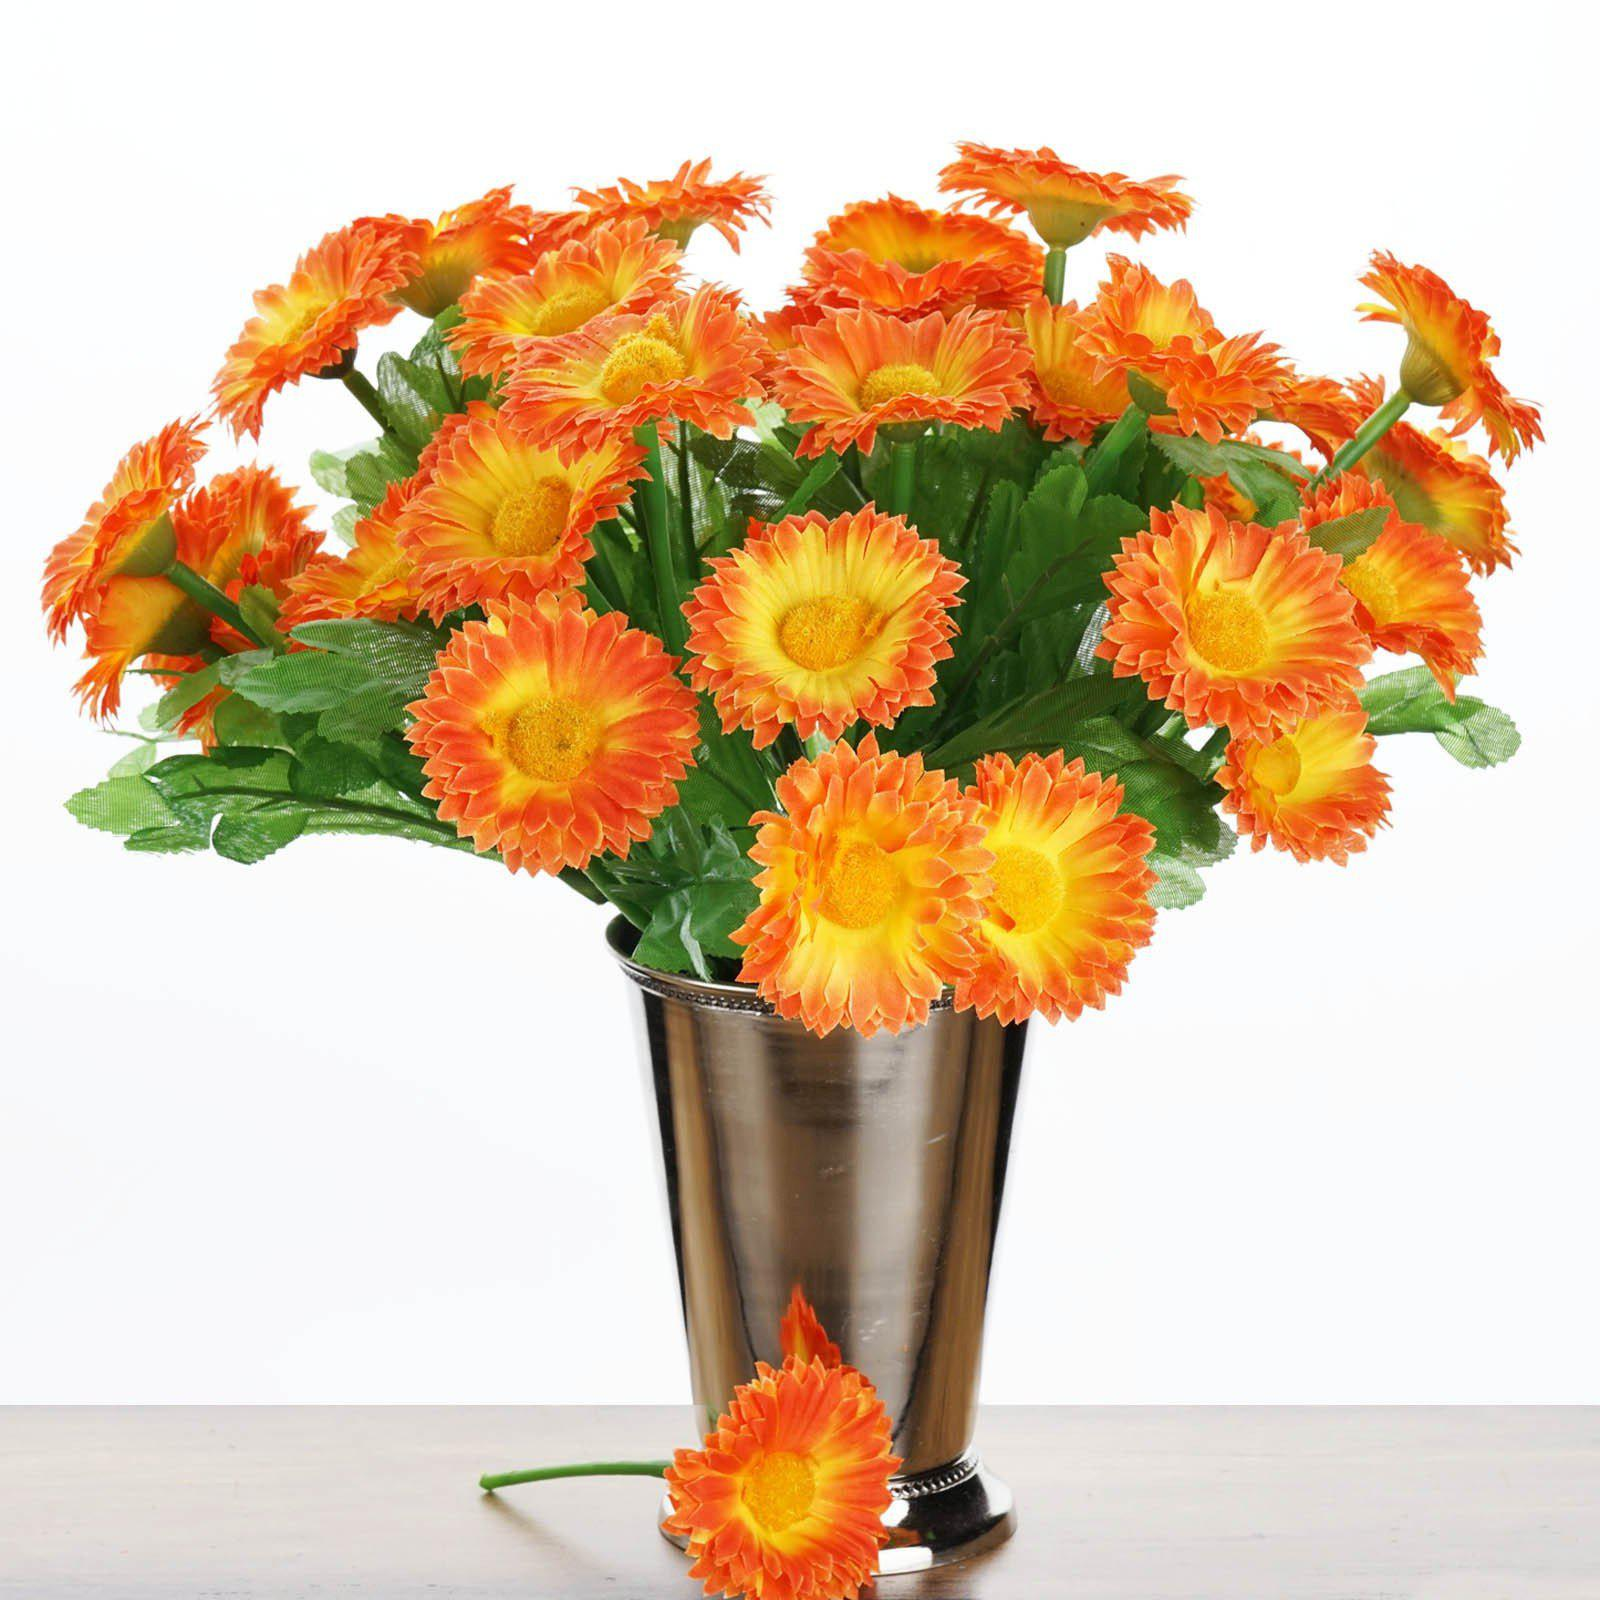 108 wholesale artificial silk daisy flowers wedding vase centerpiece 108 wholesale artificial silk daisy flowers wedding vase centerpiece decor orange izmirmasajfo